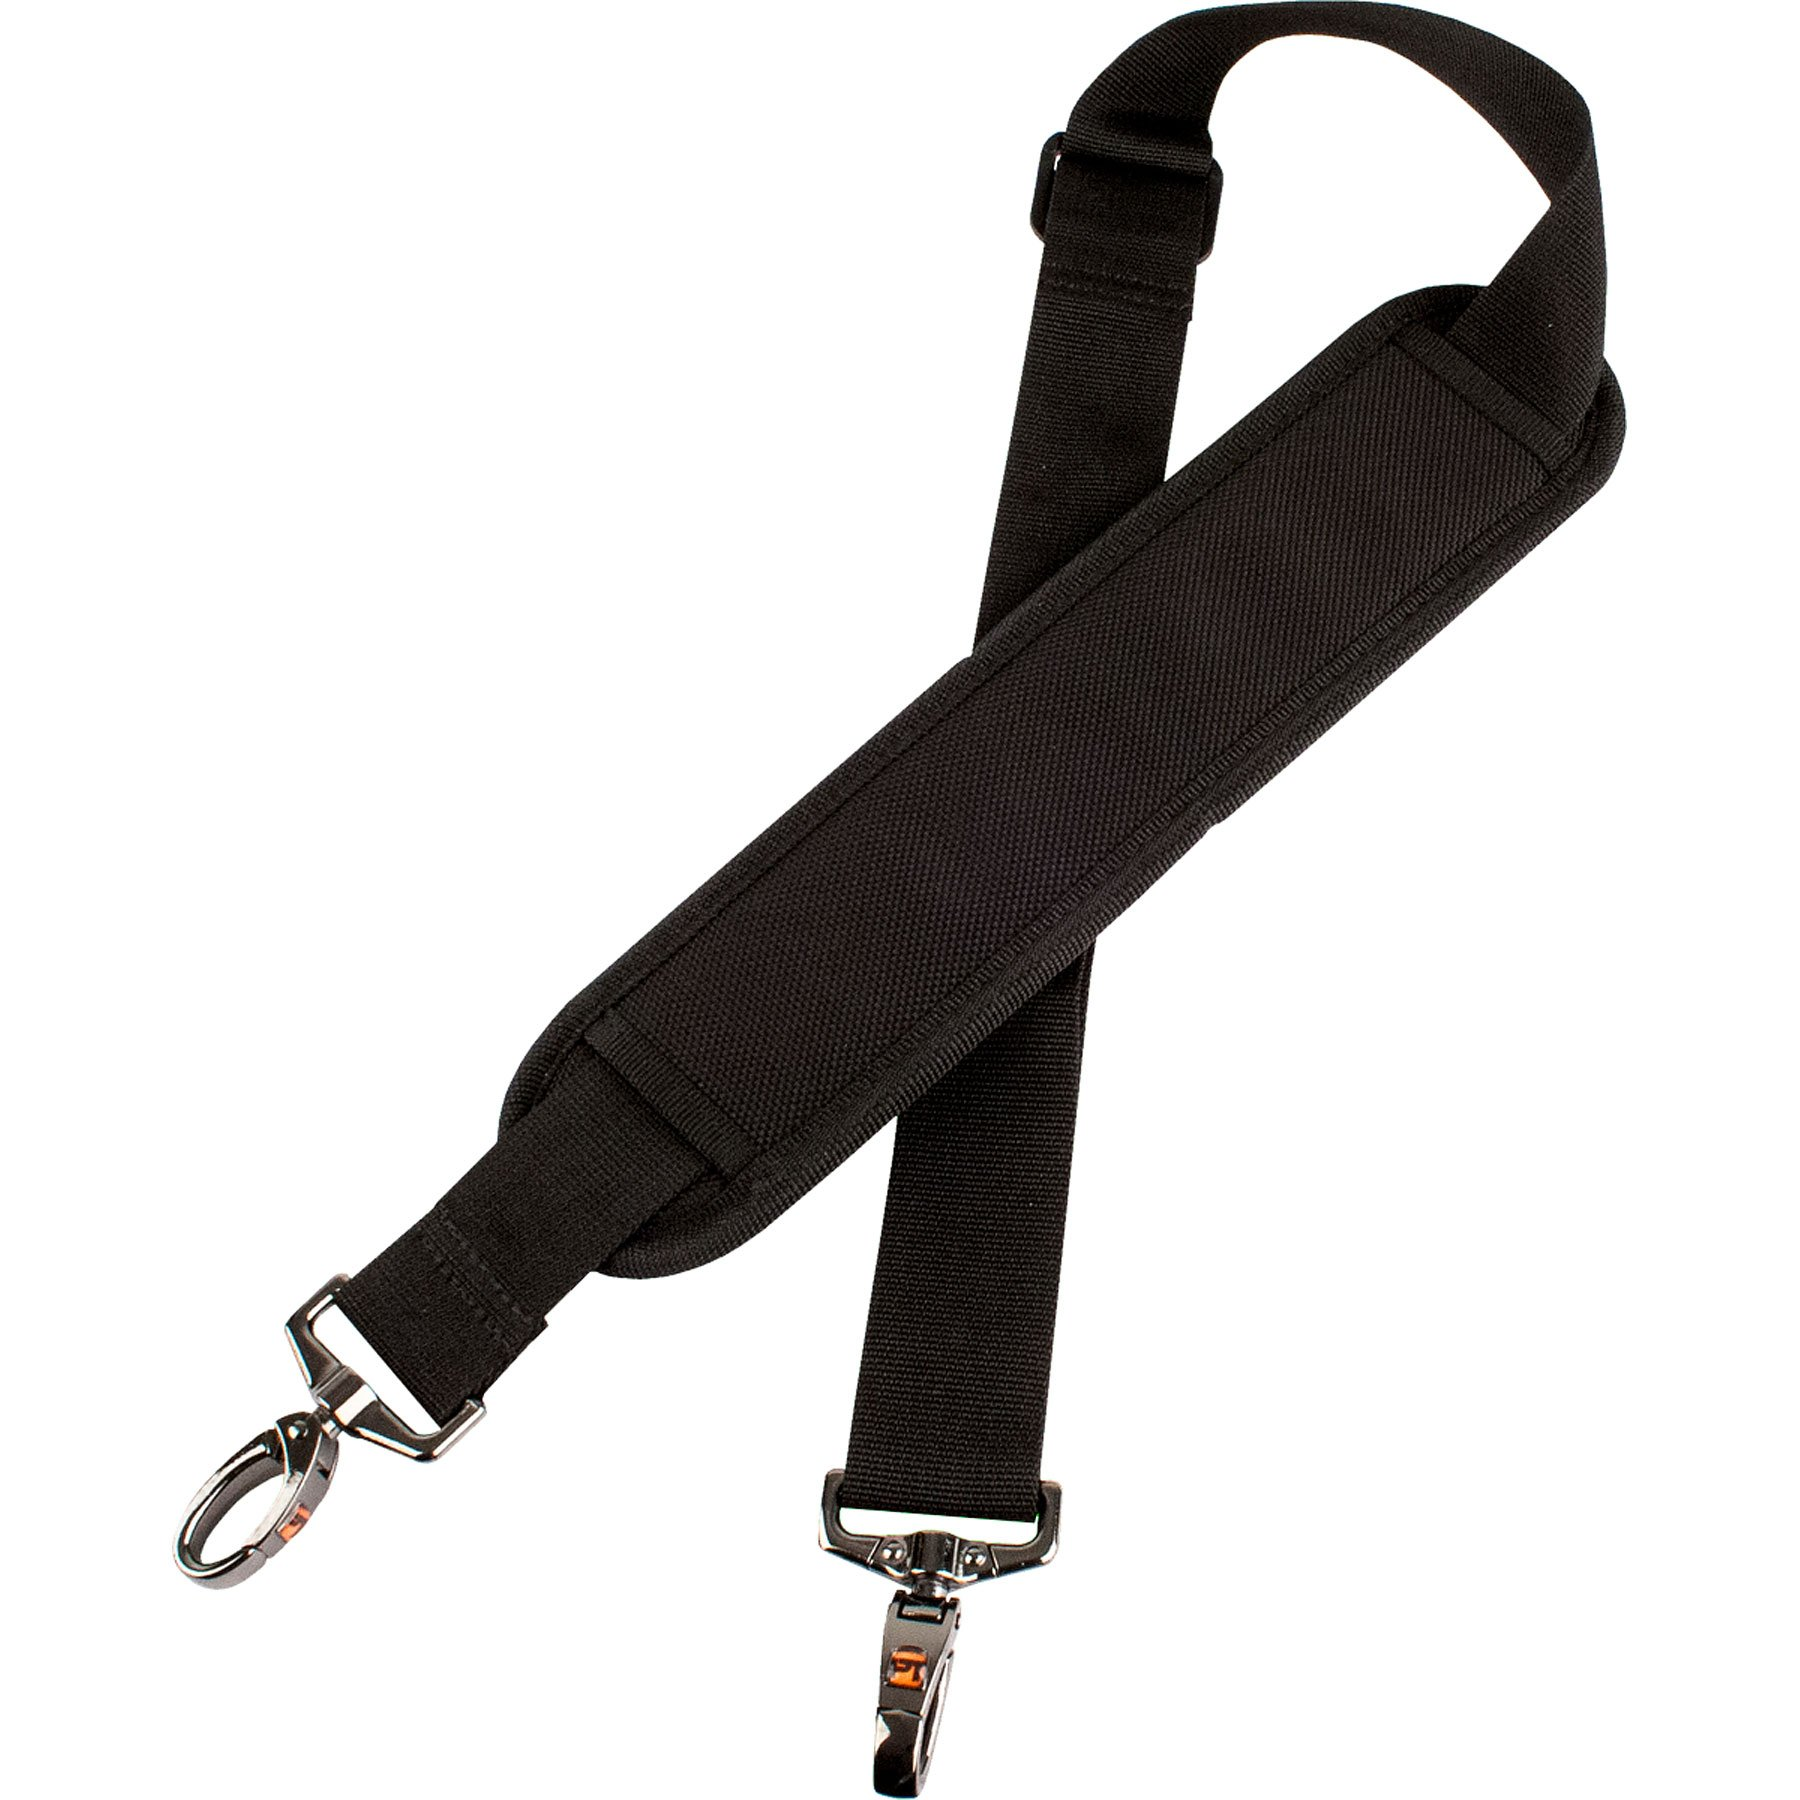 Protec Universal Replacement Shoulder Strap with Thick Pad and Metal Hardware, model SHSTRAP